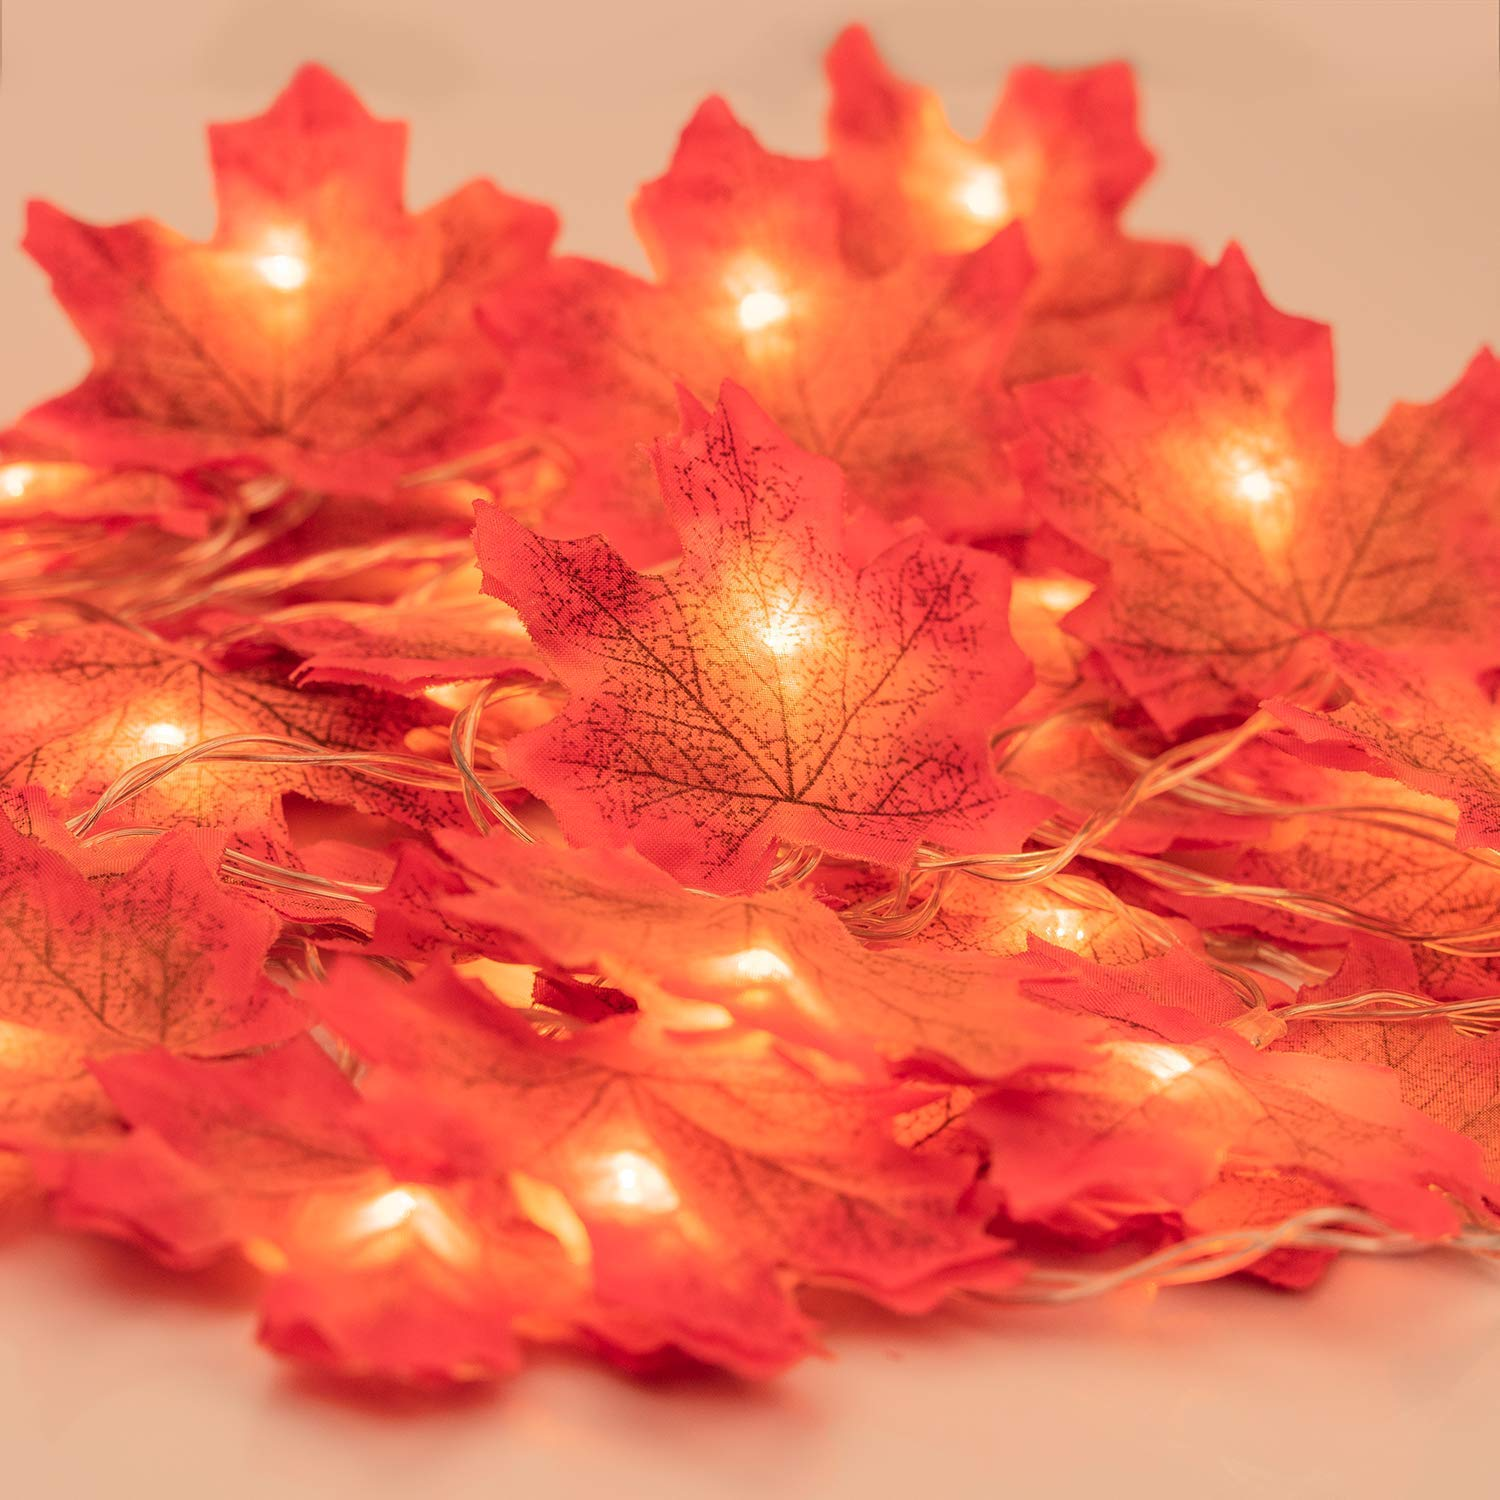 Fall Garland with Lights, Fall Maple Leaves String Light, 6.56ft /20 Led Maple Fairy Light